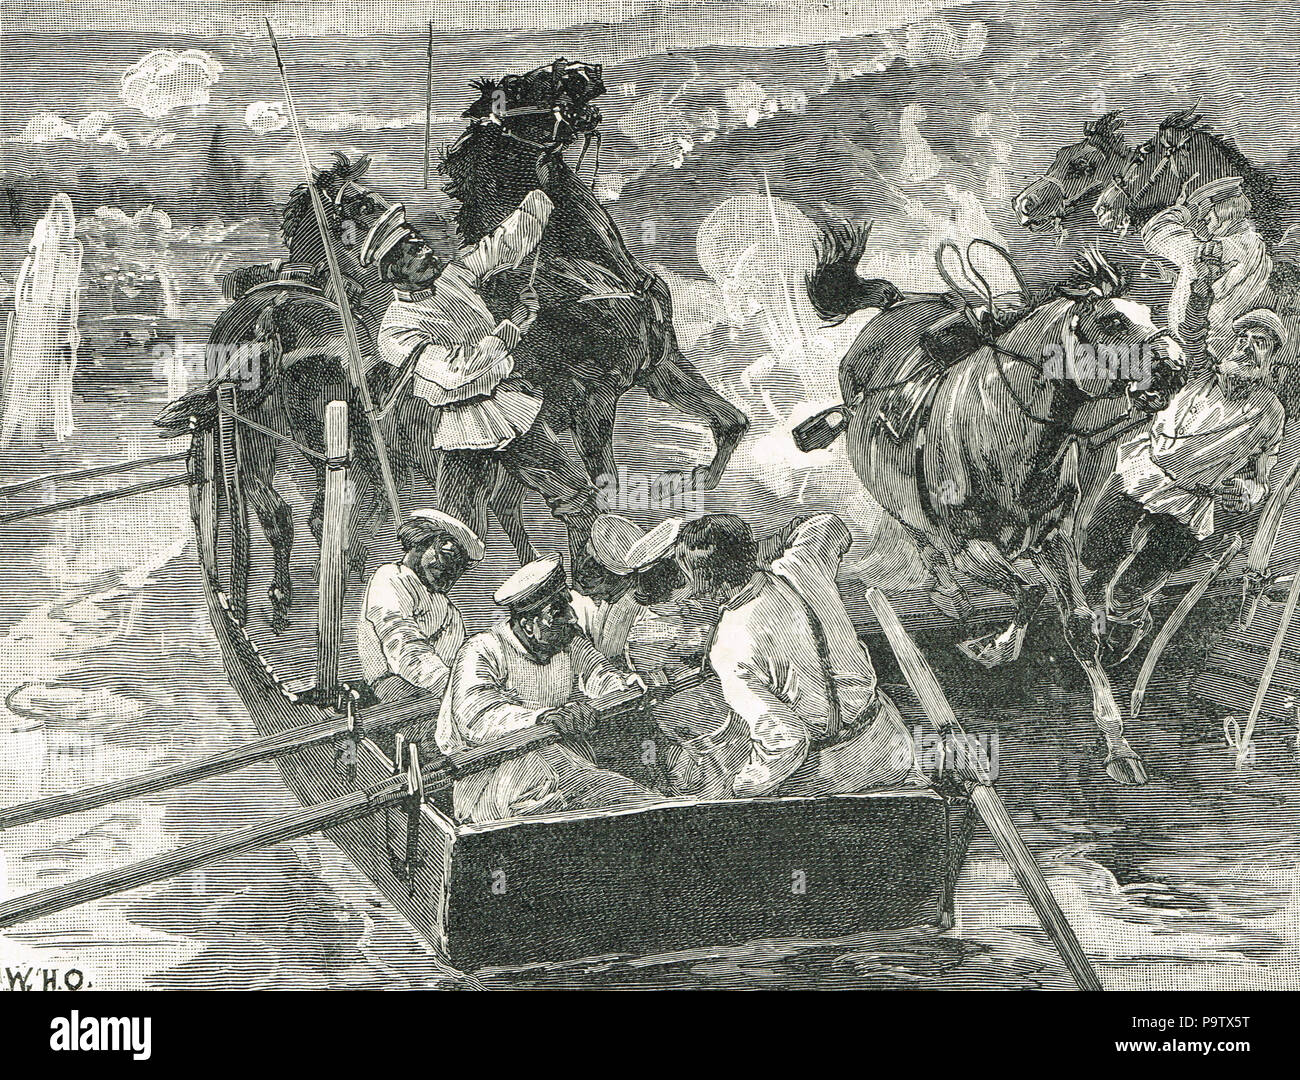 Russians crossing the Danube, battle of  Simnitza, 26 June 1877, during the Russo-Turkish War Stock Photo